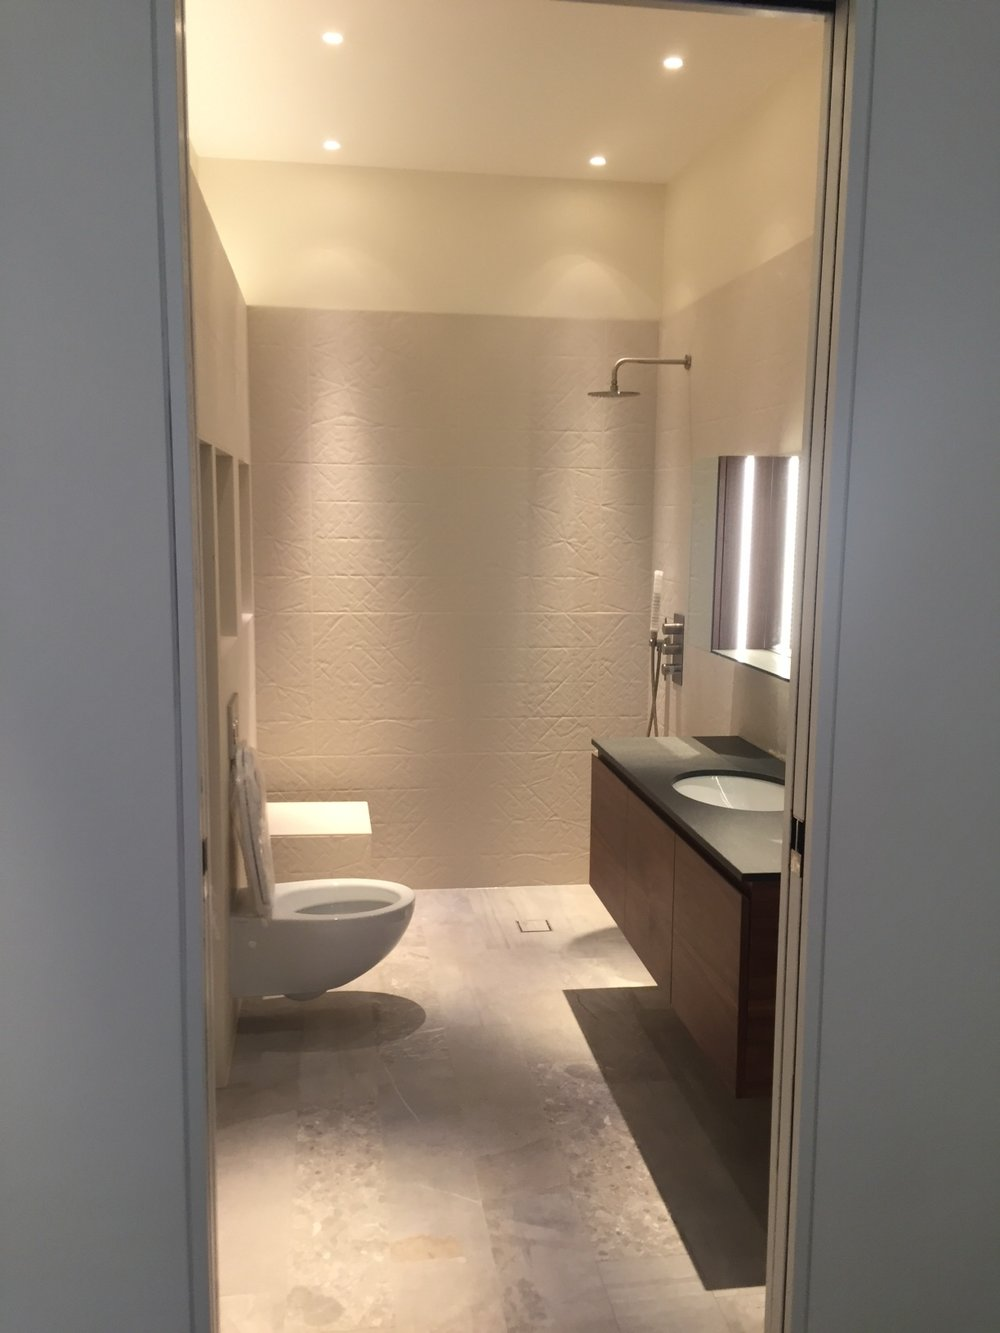 Demolition and new build | London | Bathroom construction